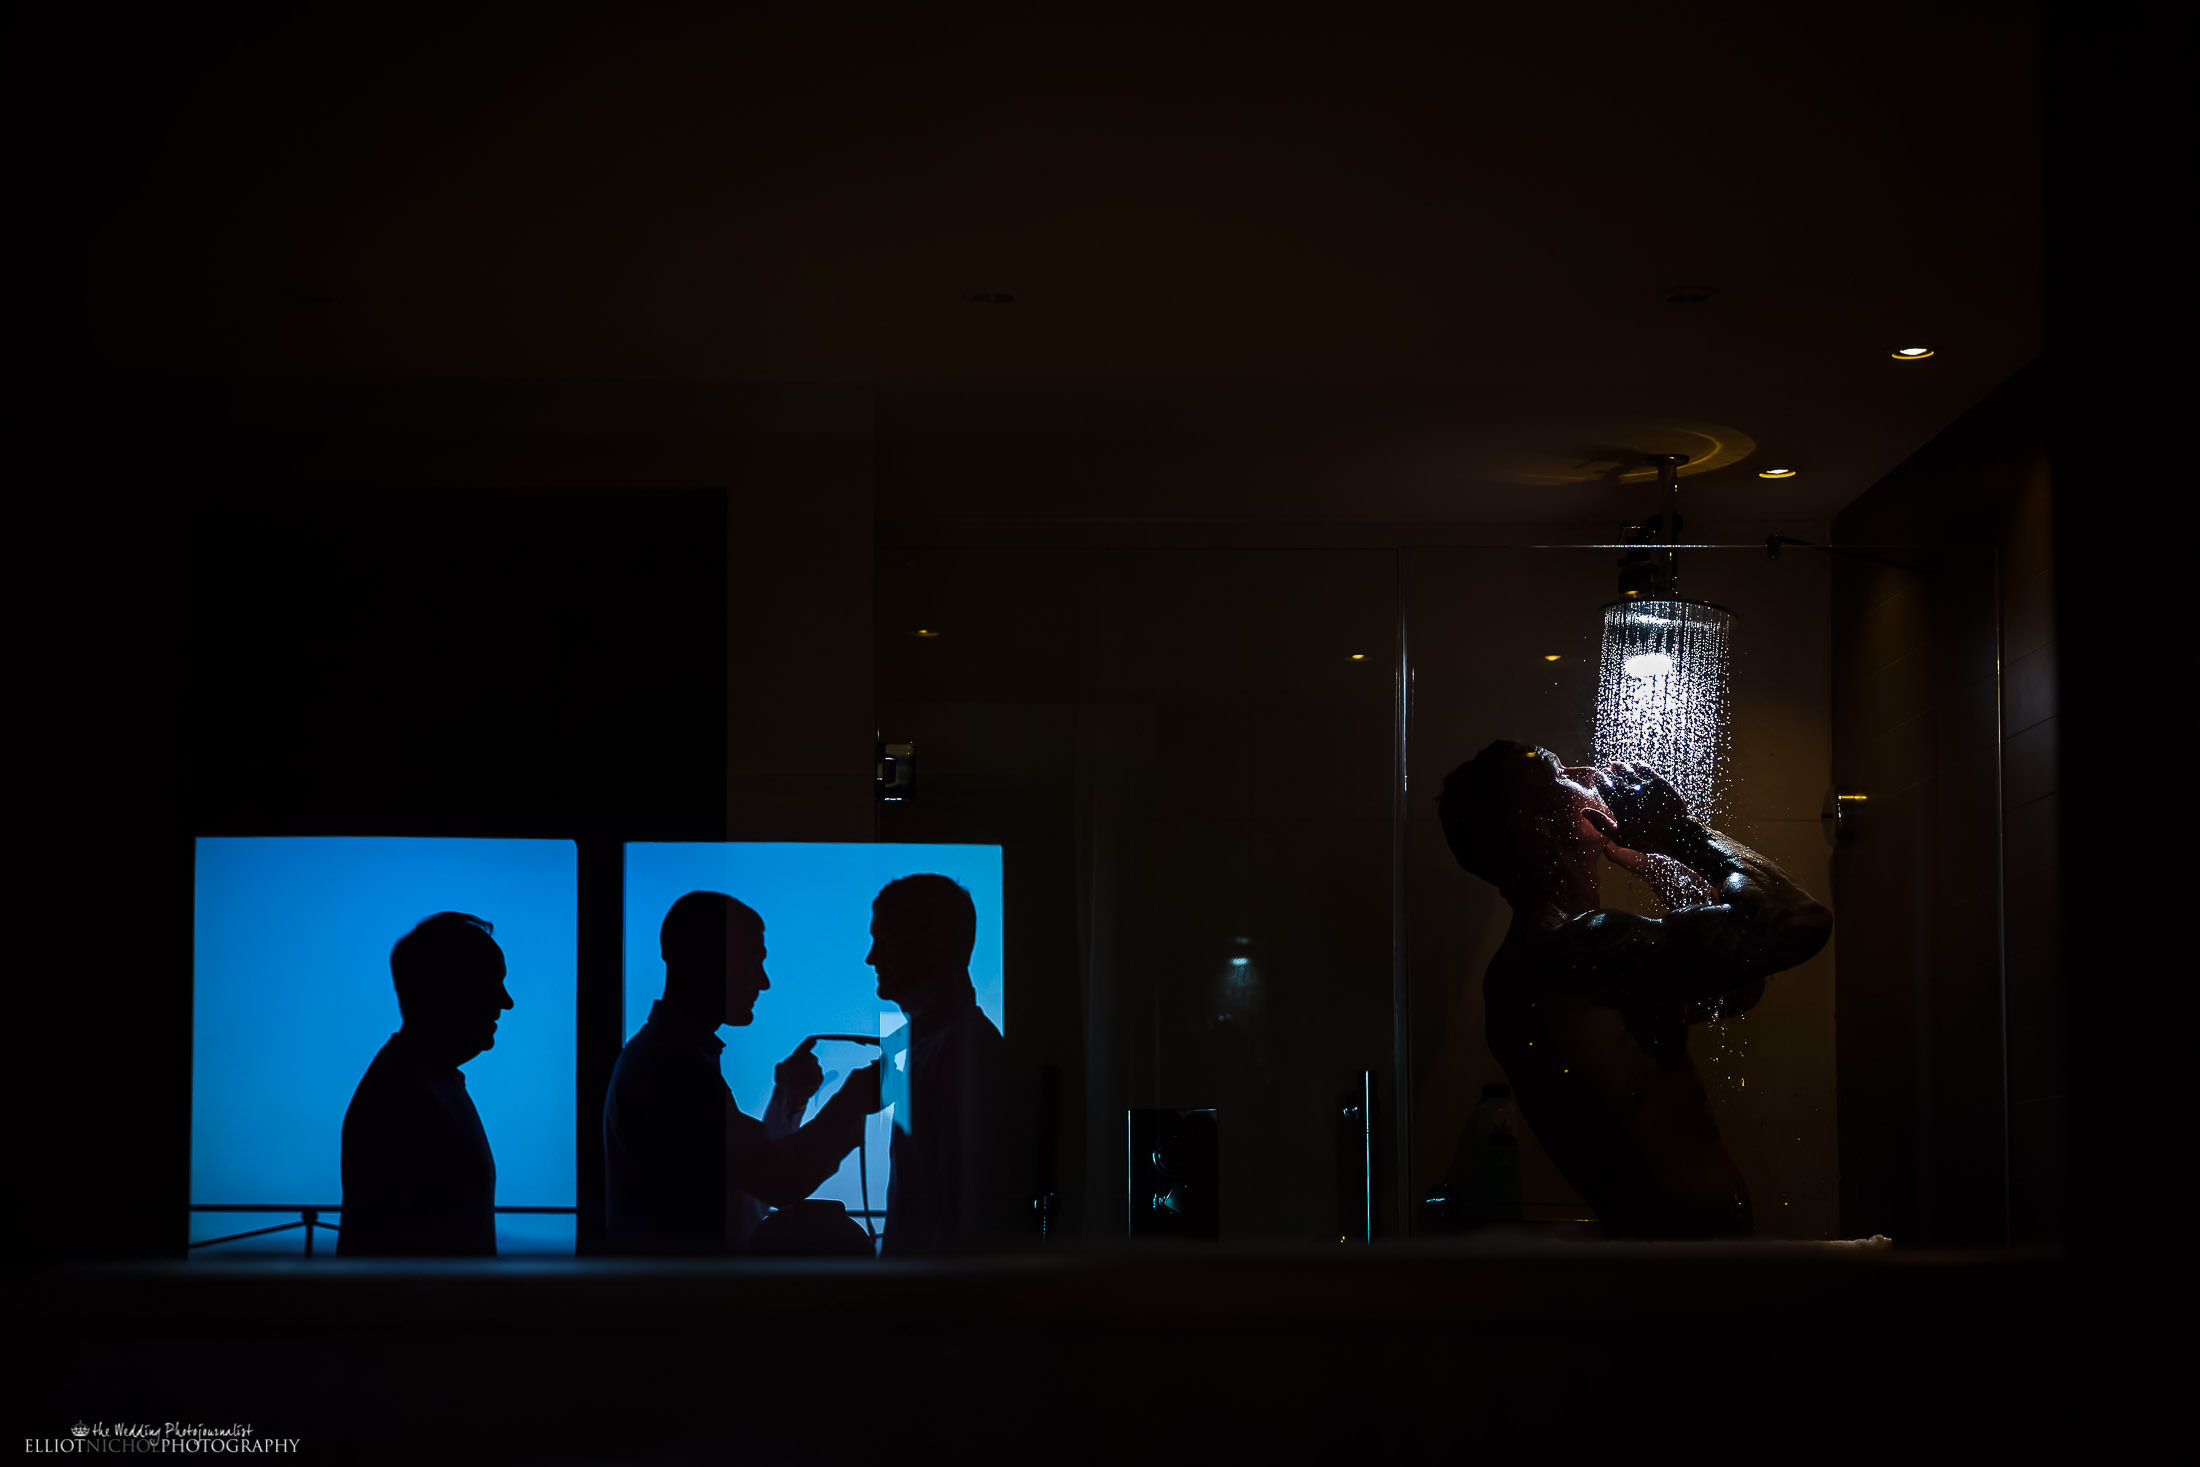 Groom takes shower while is groomsmen get ready. Photo by Newcastle Upon Tyne based wedding photographer Elliot Nichol, Photographing UK and EU destination weddings.